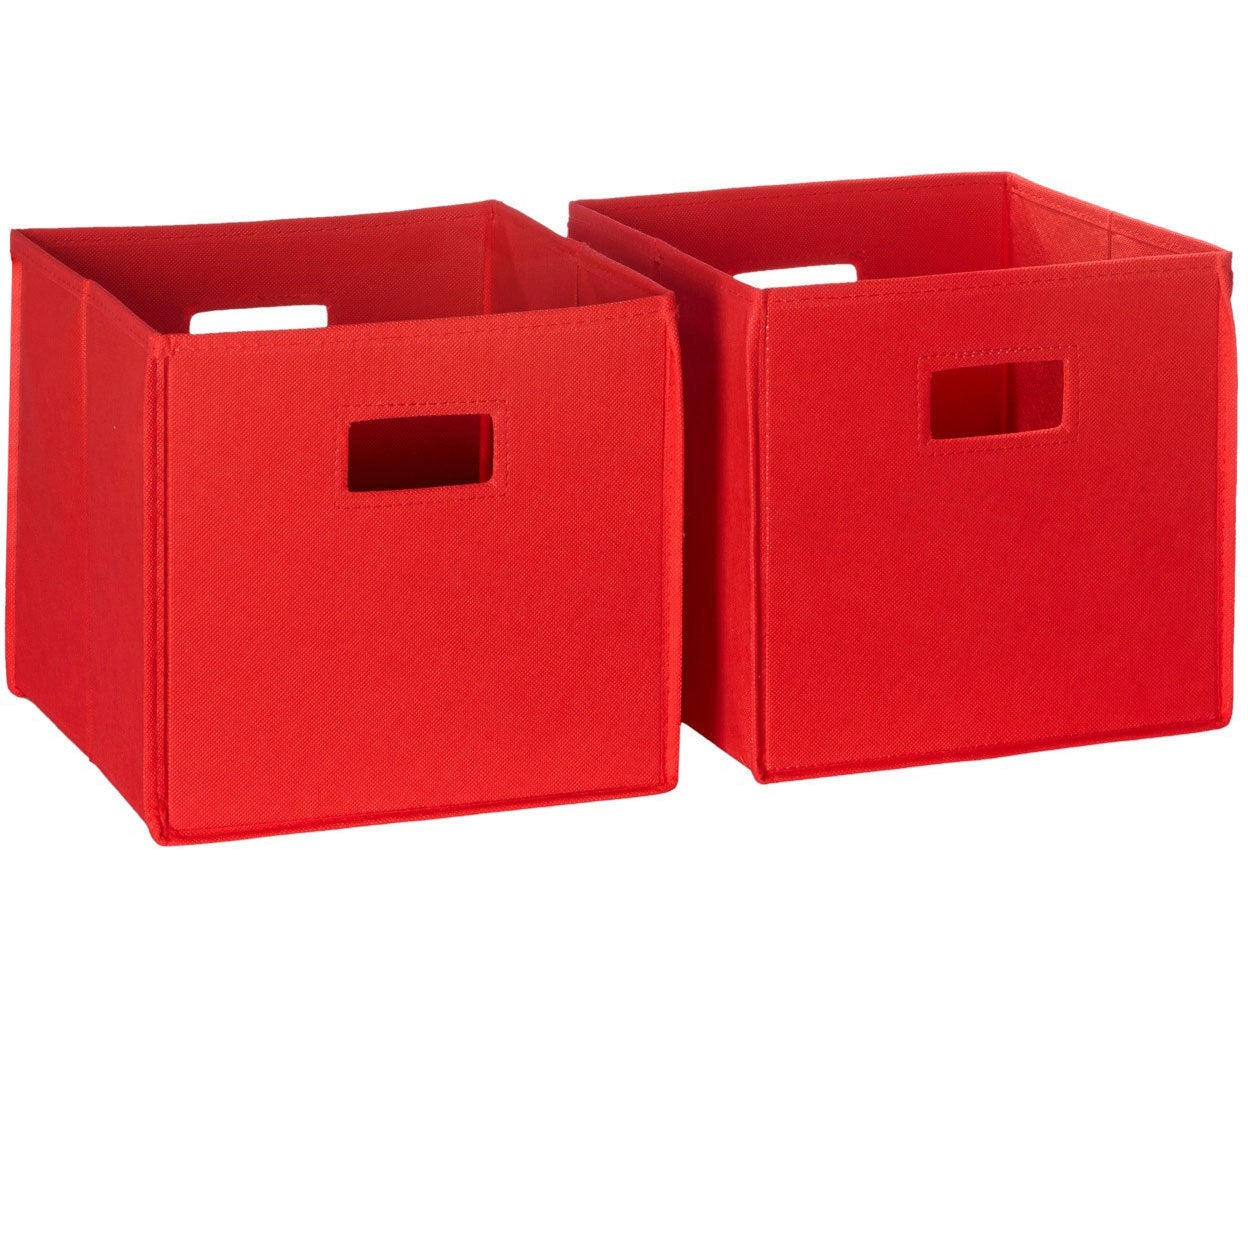 Superieur Shop RiverRidge Kids Folding Storage Bins With Handles (Set Of 2)   Free  Shipping On Orders Over $45   Overstock.com   8352538